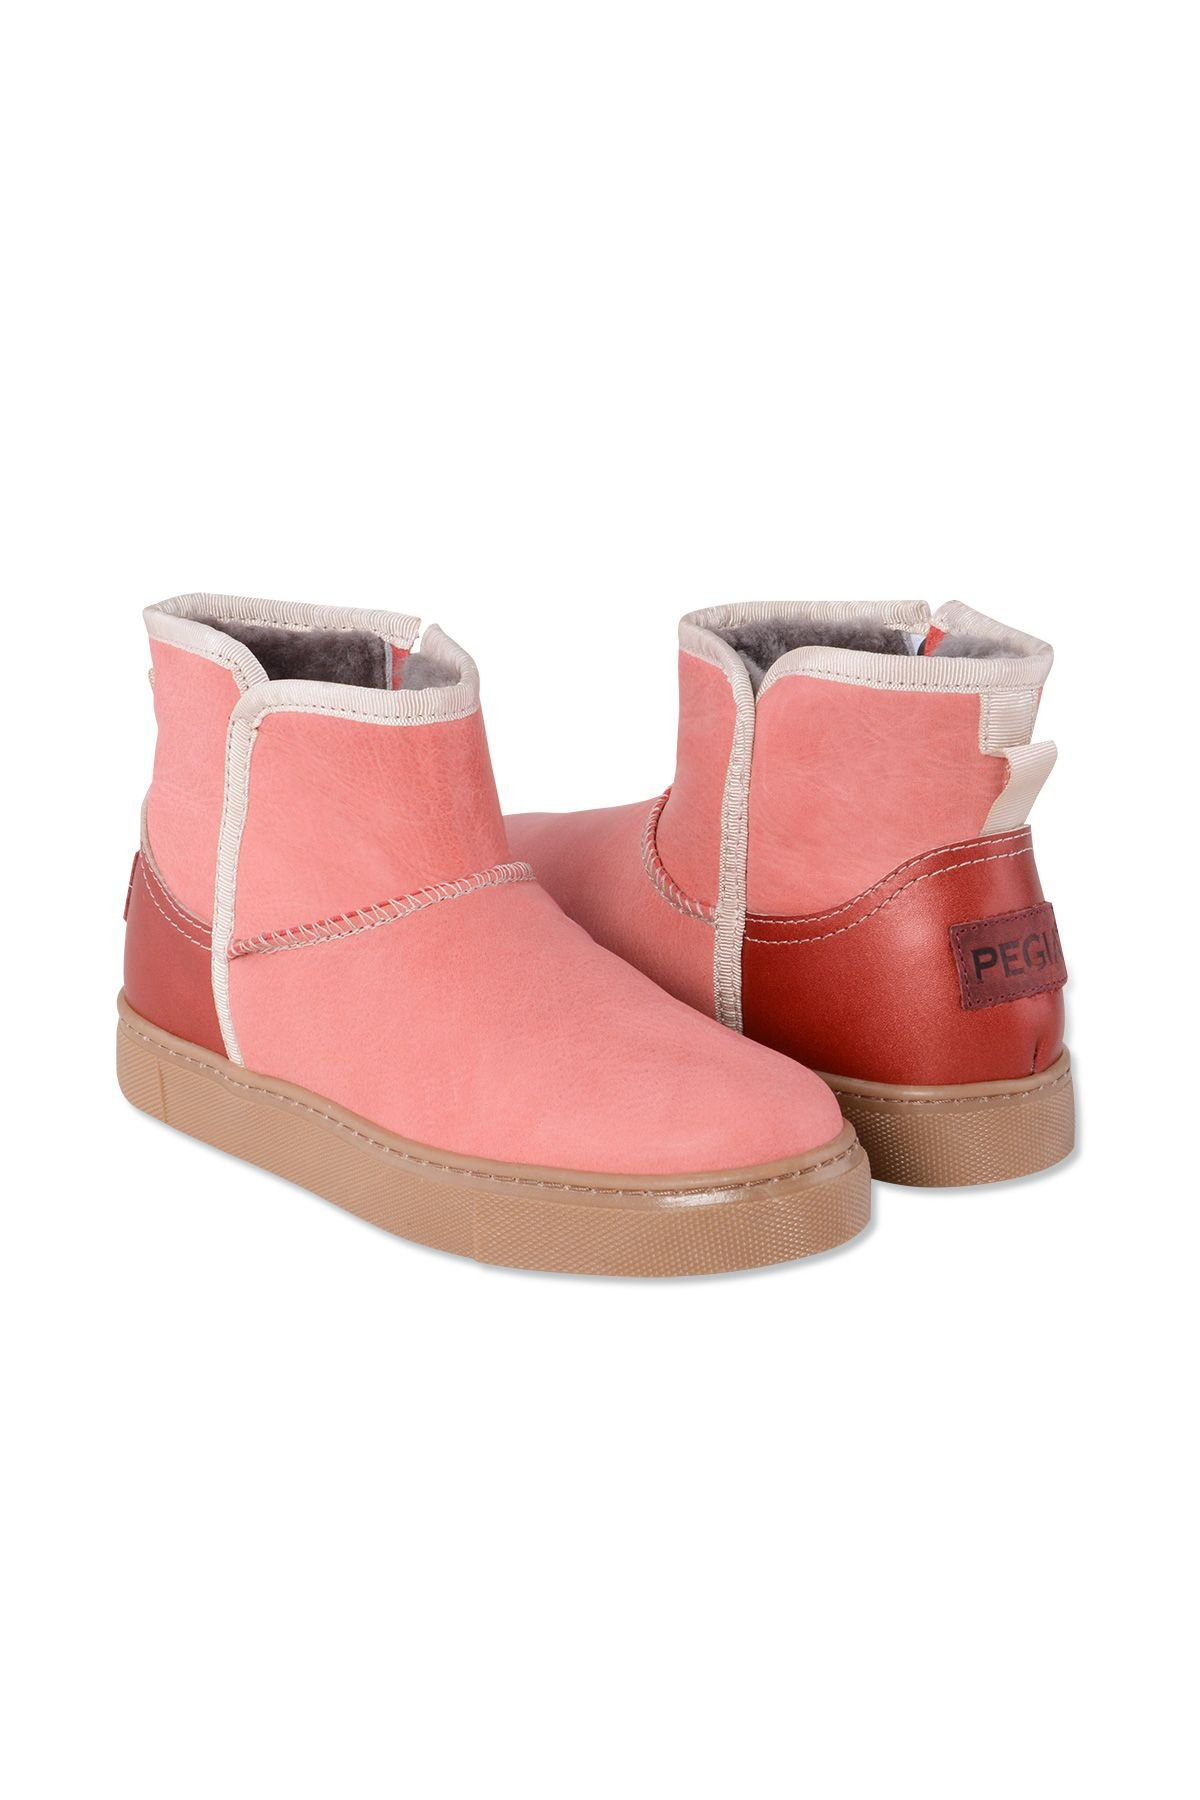 Pegia Genuine Leather & Shearling Women's Boots with a Zip 980415 Pink